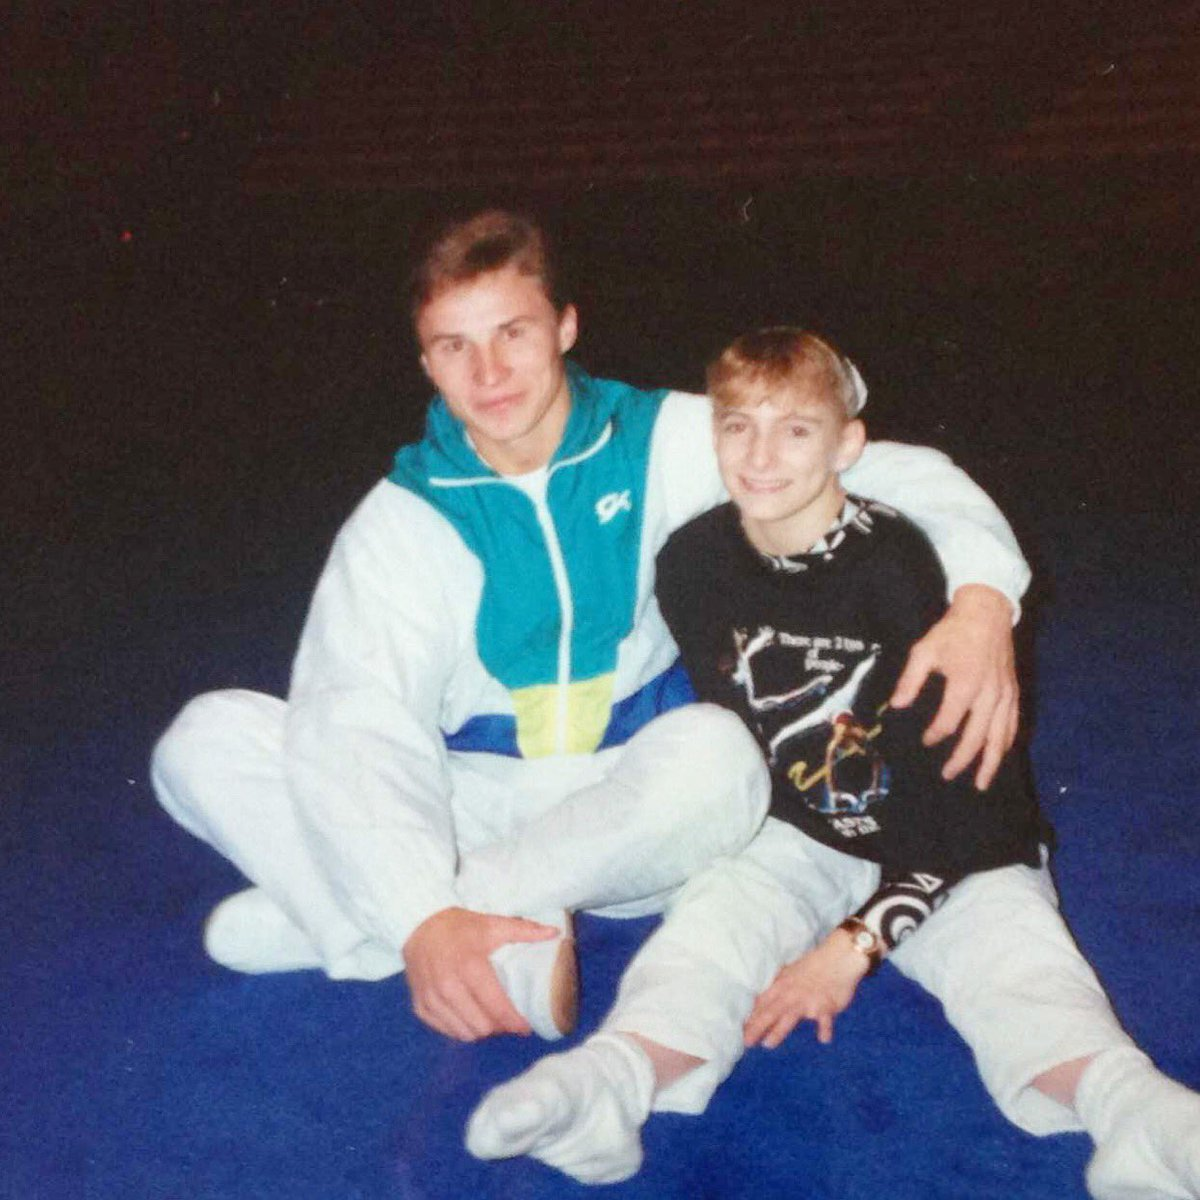 Congrats to an amazing athlete, coach & person, Valeri Liukin! Named U.S. Women's Nat'l Team Coordinator by @USAGym! https://t.co/DNQYQbaqXw